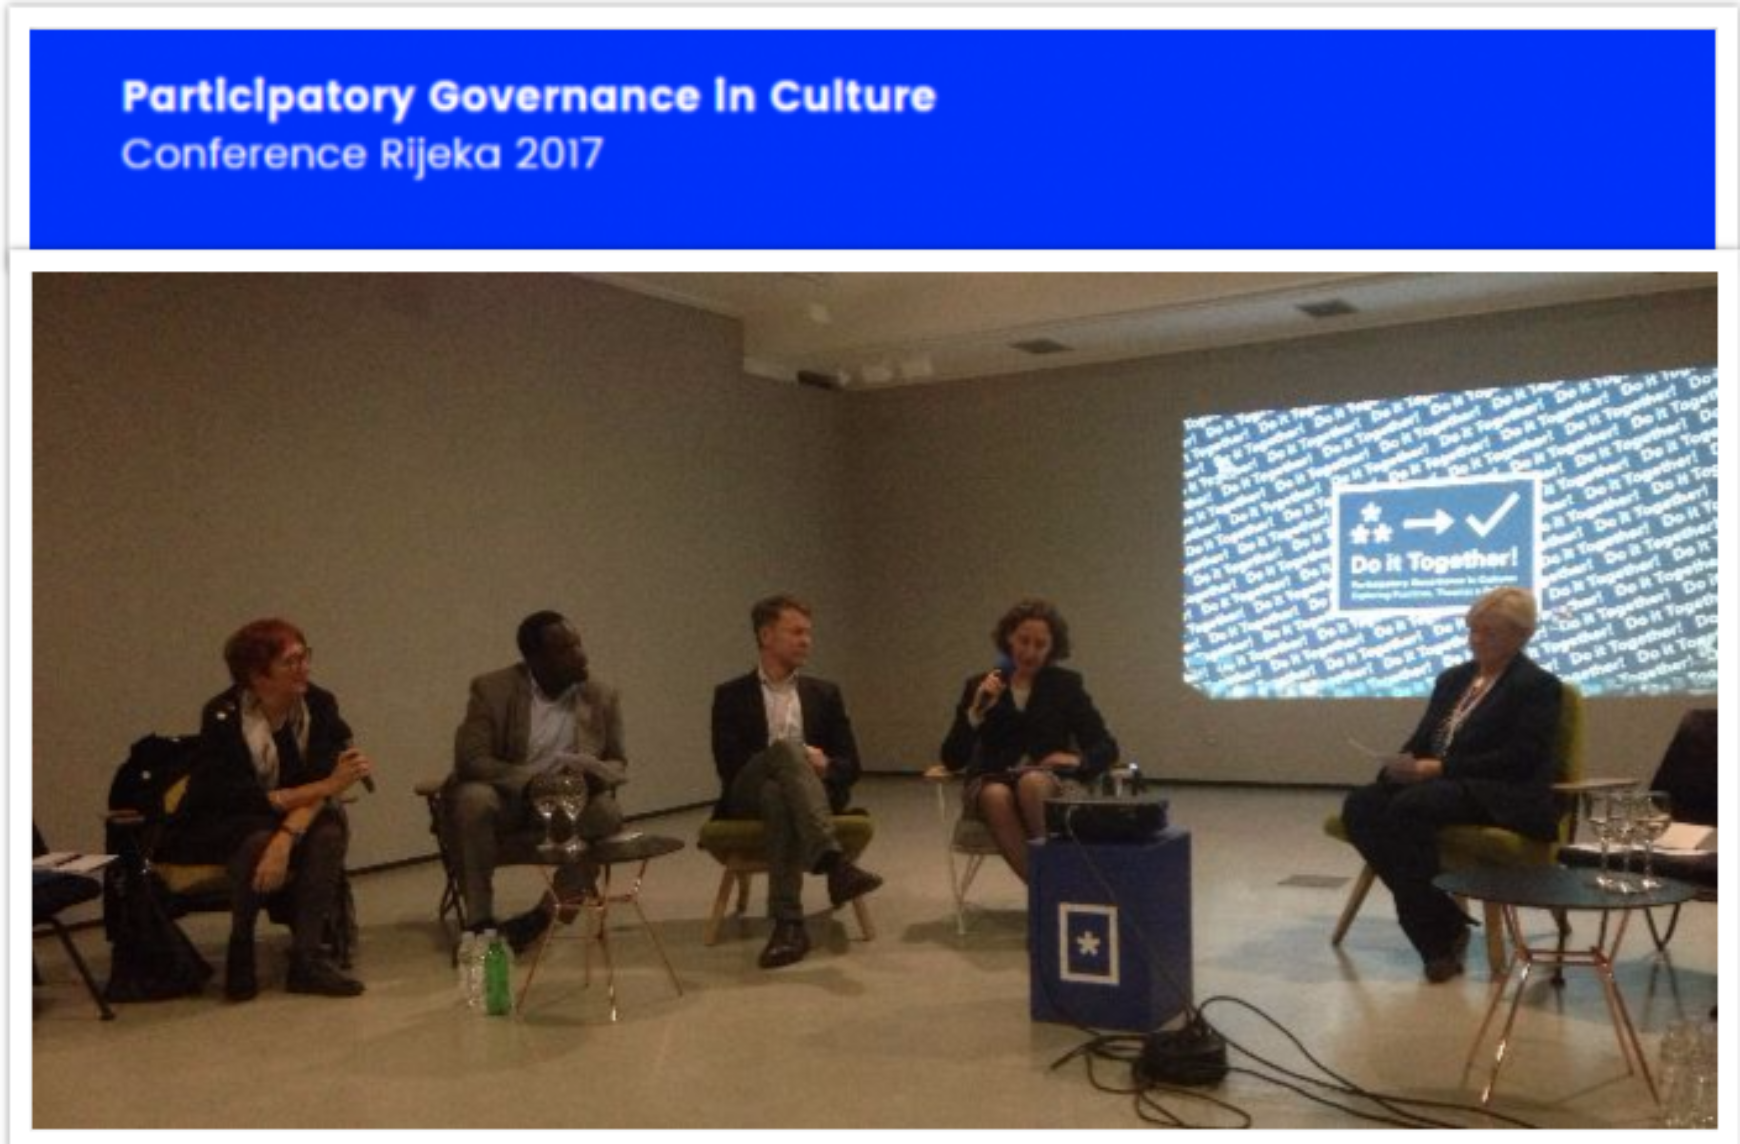 Participatory Governance in Culture: exploring practises